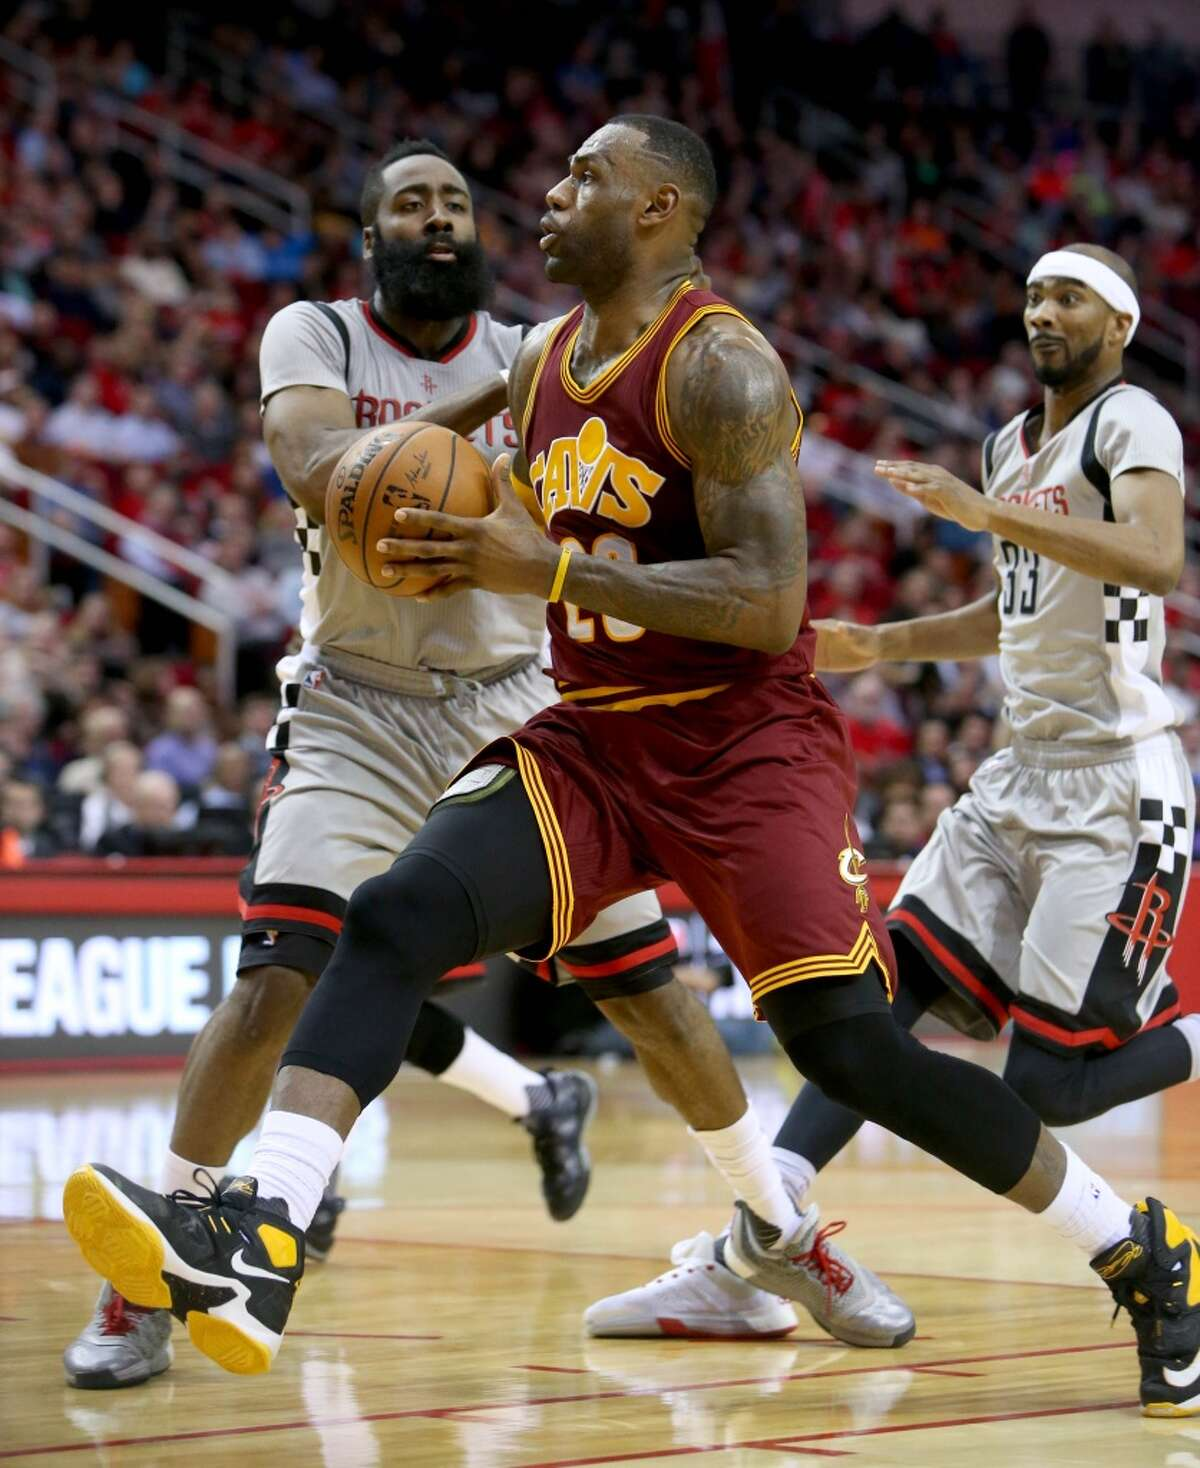 Cleveland Cavaliers forward LeBron James (23) drives around Houston Rockets guard James Harden (13) scoring in the third quarter at the Toyota Center Friday, Jan. 15, 2016, in Houston. Rockets lost 77-91. ( Gary Coronado / Houston Chronicle )